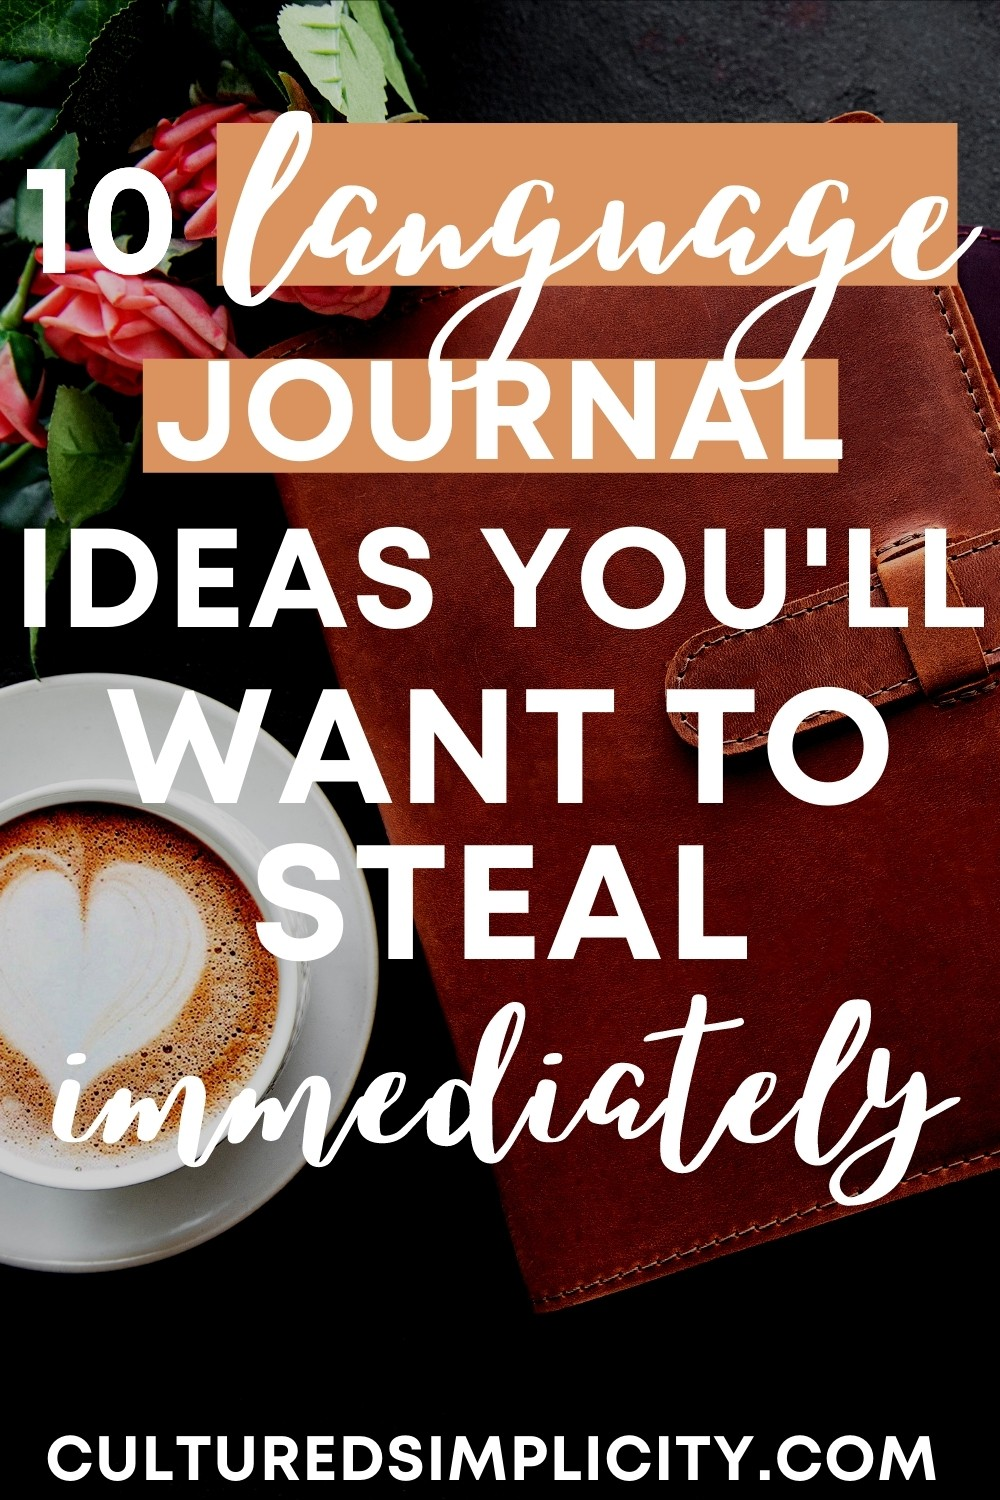 10 Language Journal Ideas You'll Want to Steal Immediately